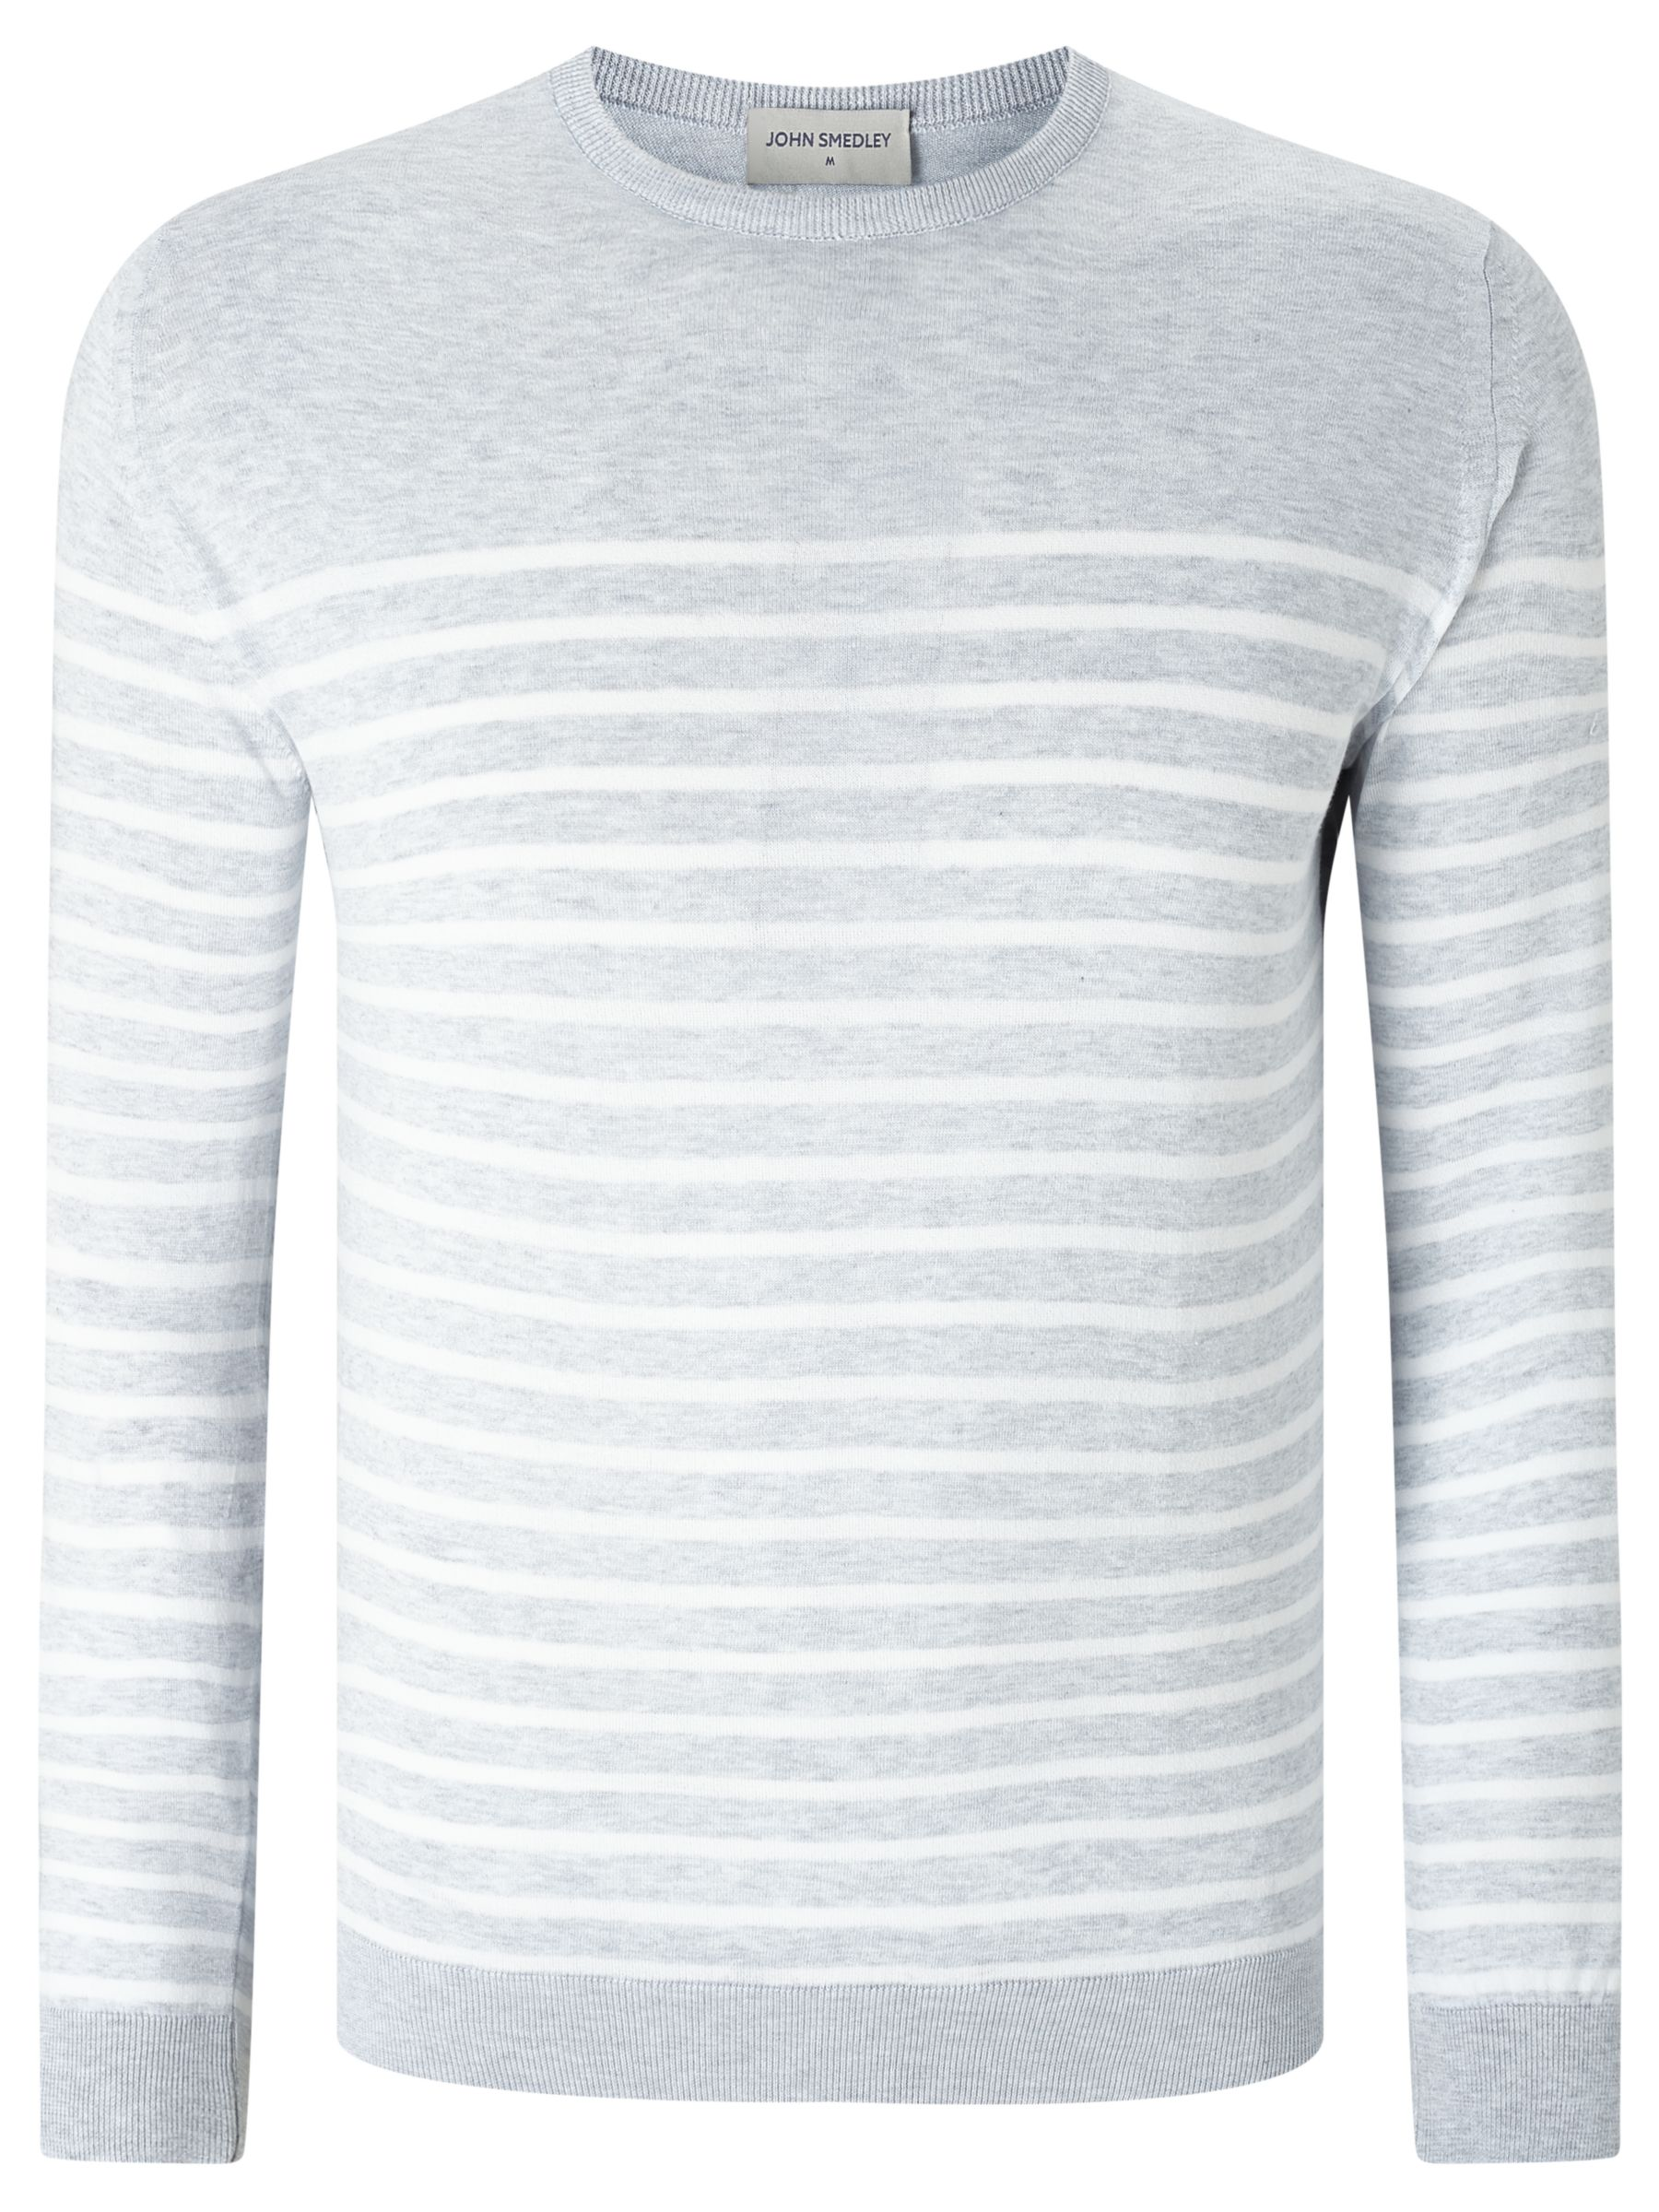 John Smedley John Smedley Redfree Sea Island Cotton Striped Crew Neck Jumper, Feather Grey